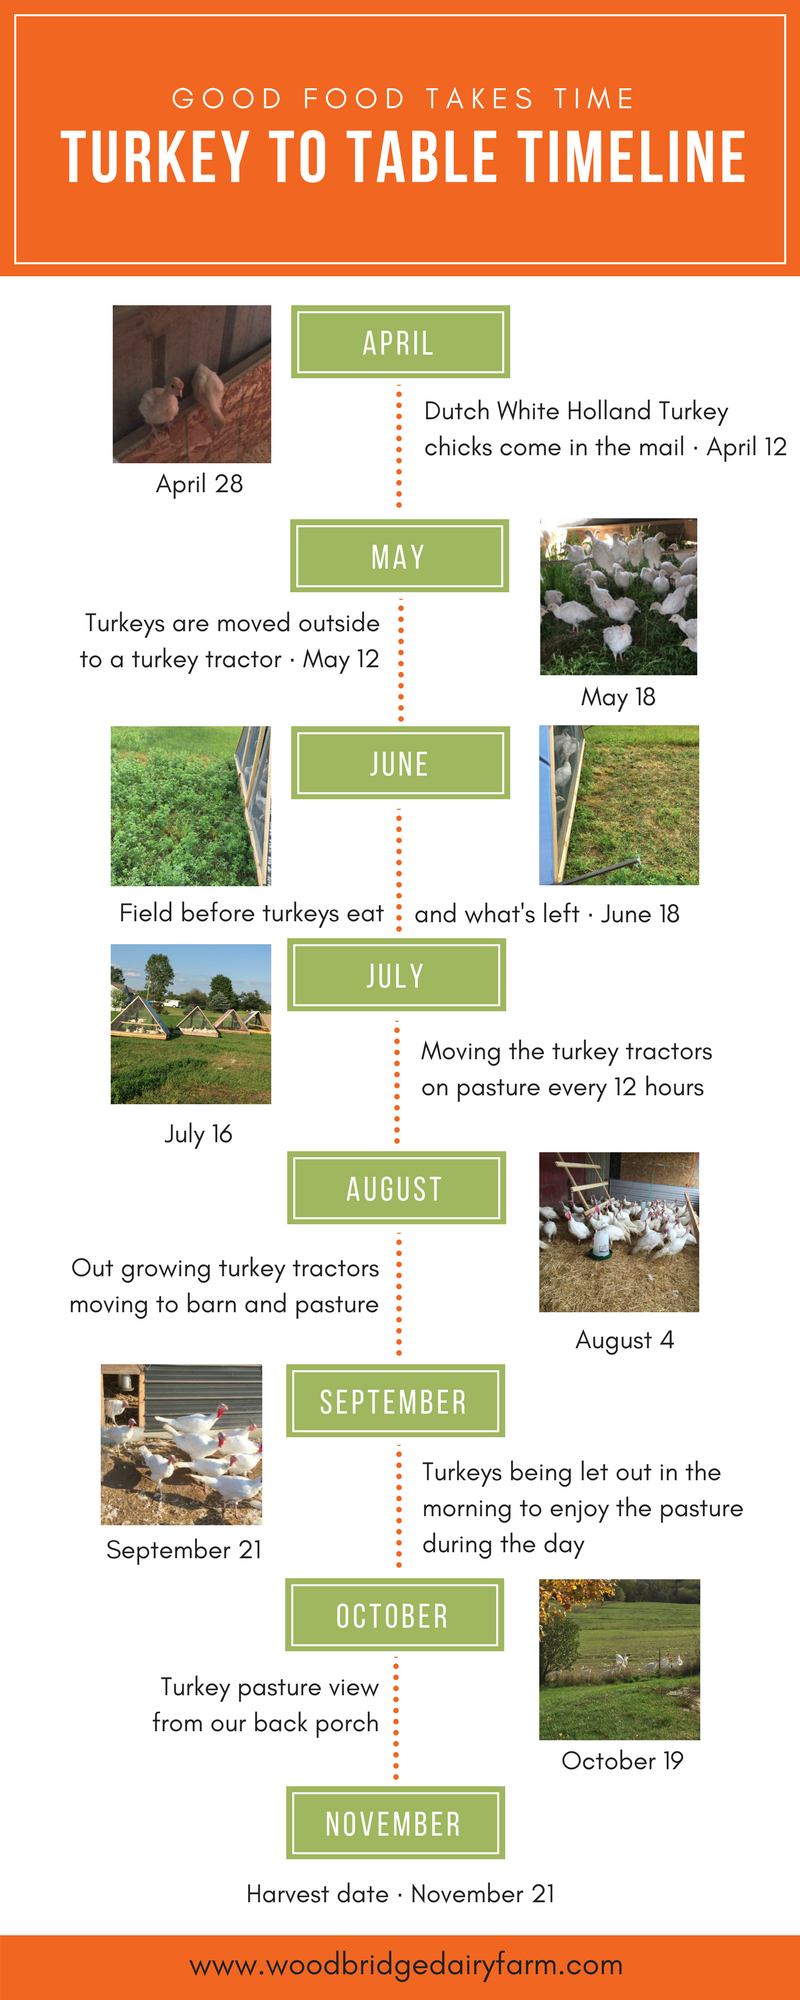 Turkey to Table Timeline.png